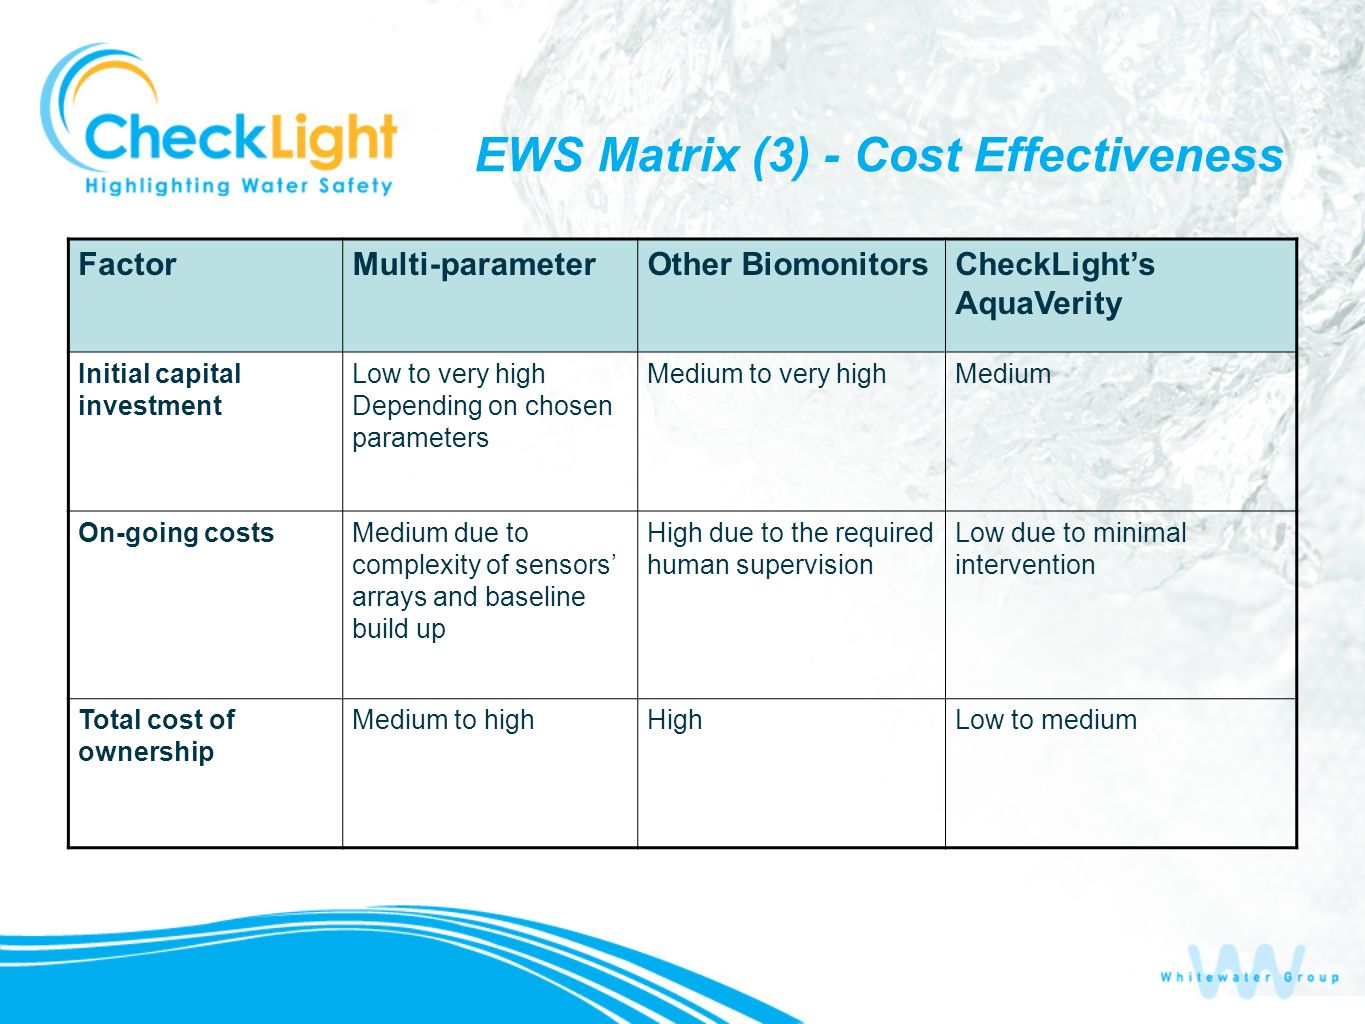 EWS Matrix (3) - Cost Effectiveness CheckLights AquaVerity Other BiomonitorsMulti-parameterFactor MediumMedium to very highLow to very high Depending